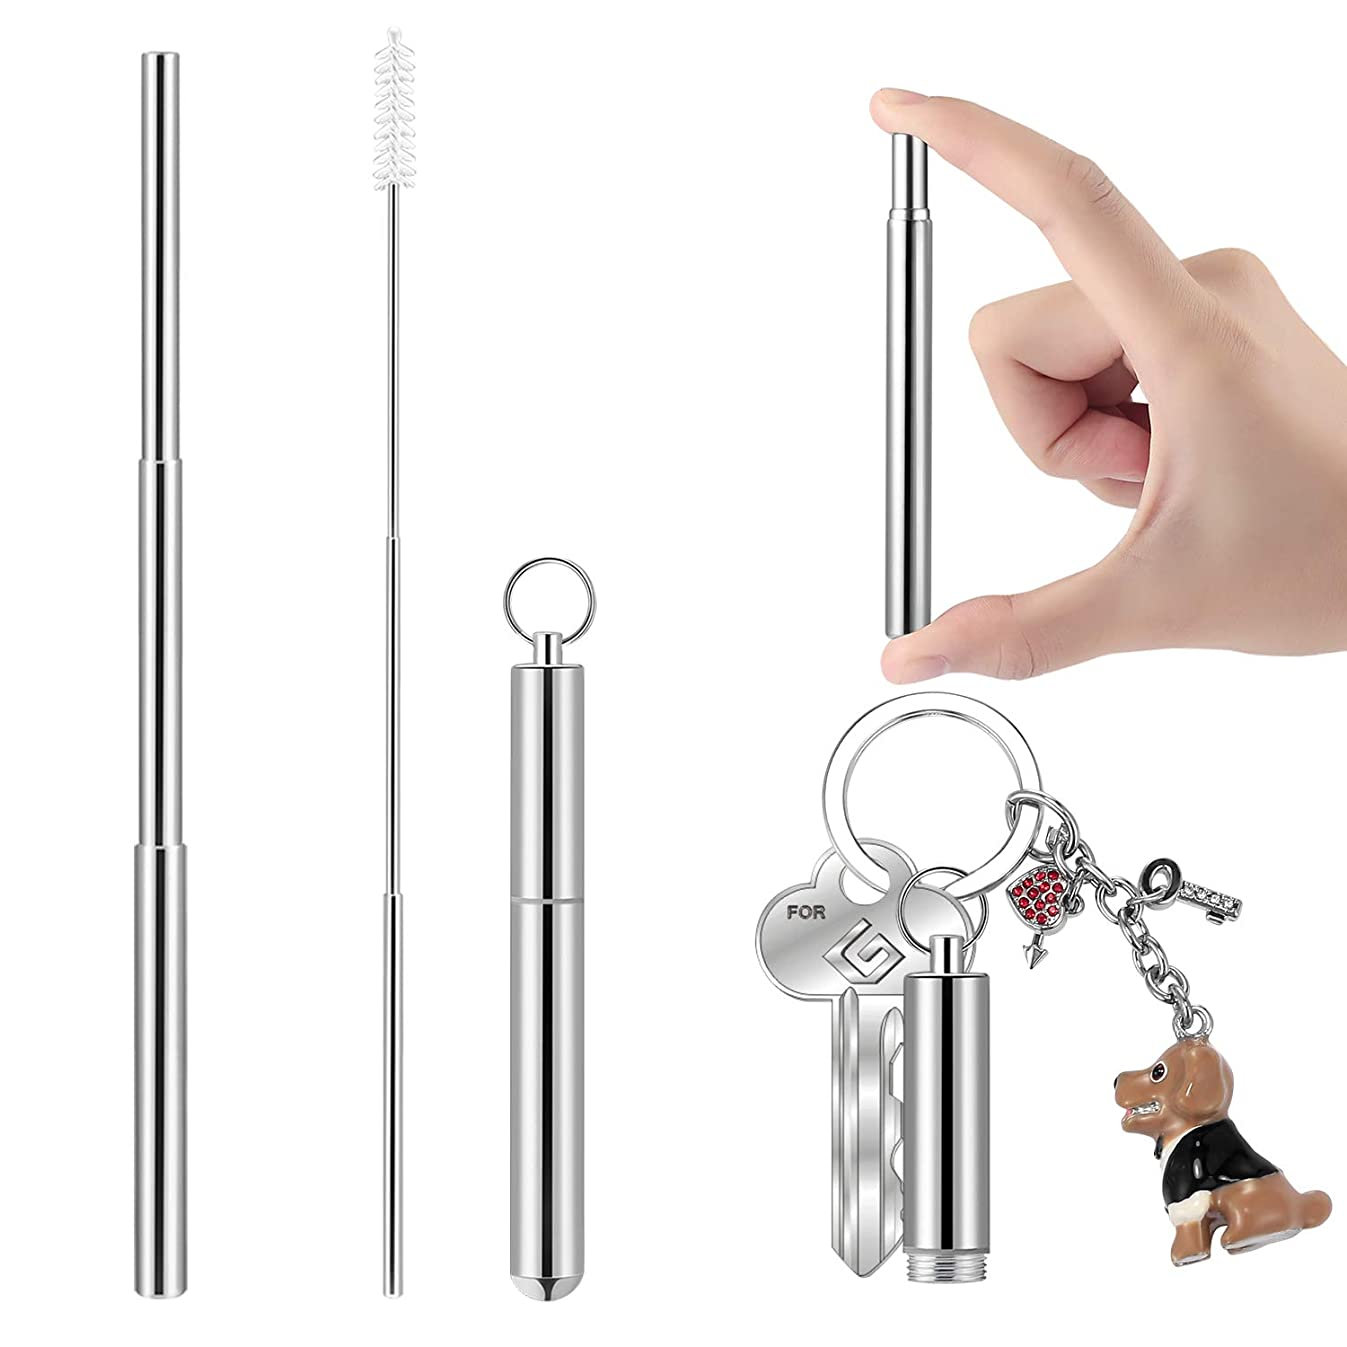 Portable Telescopic Stainless Steel Straws, Yoocaa Reusable Food-grade?Travel Drinking Straws with Aluminum Case, Dishwasher Safe with Cleaning Brush(Silver)